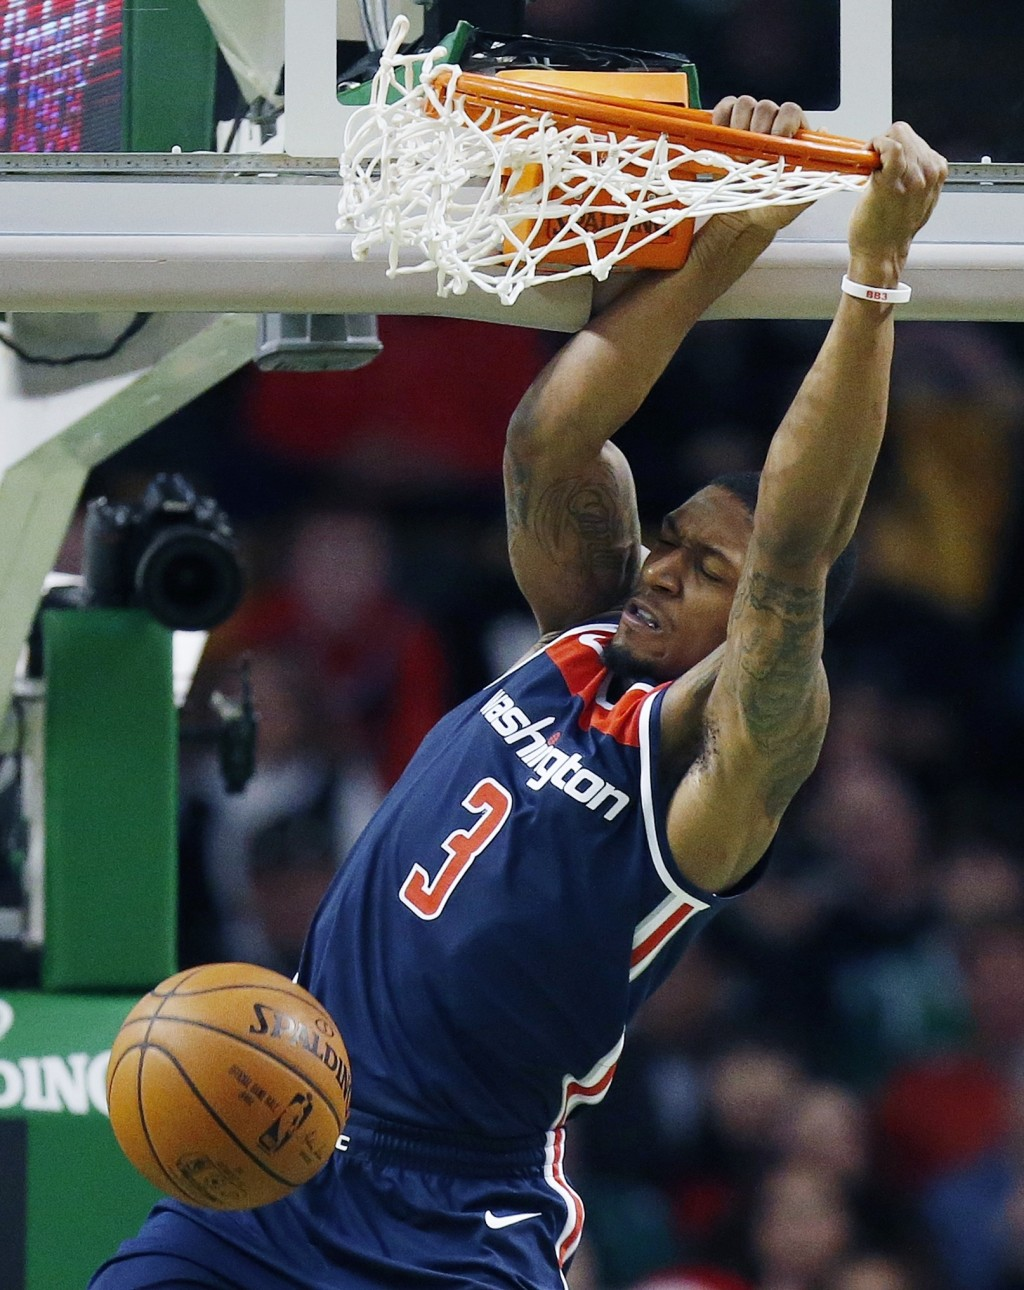 Washington Wizards' Bradley Beal (3) dunks during the second quarter of an NBA basketball game against the Boston Celtics in Boston, Monday, Dec. 25, ...